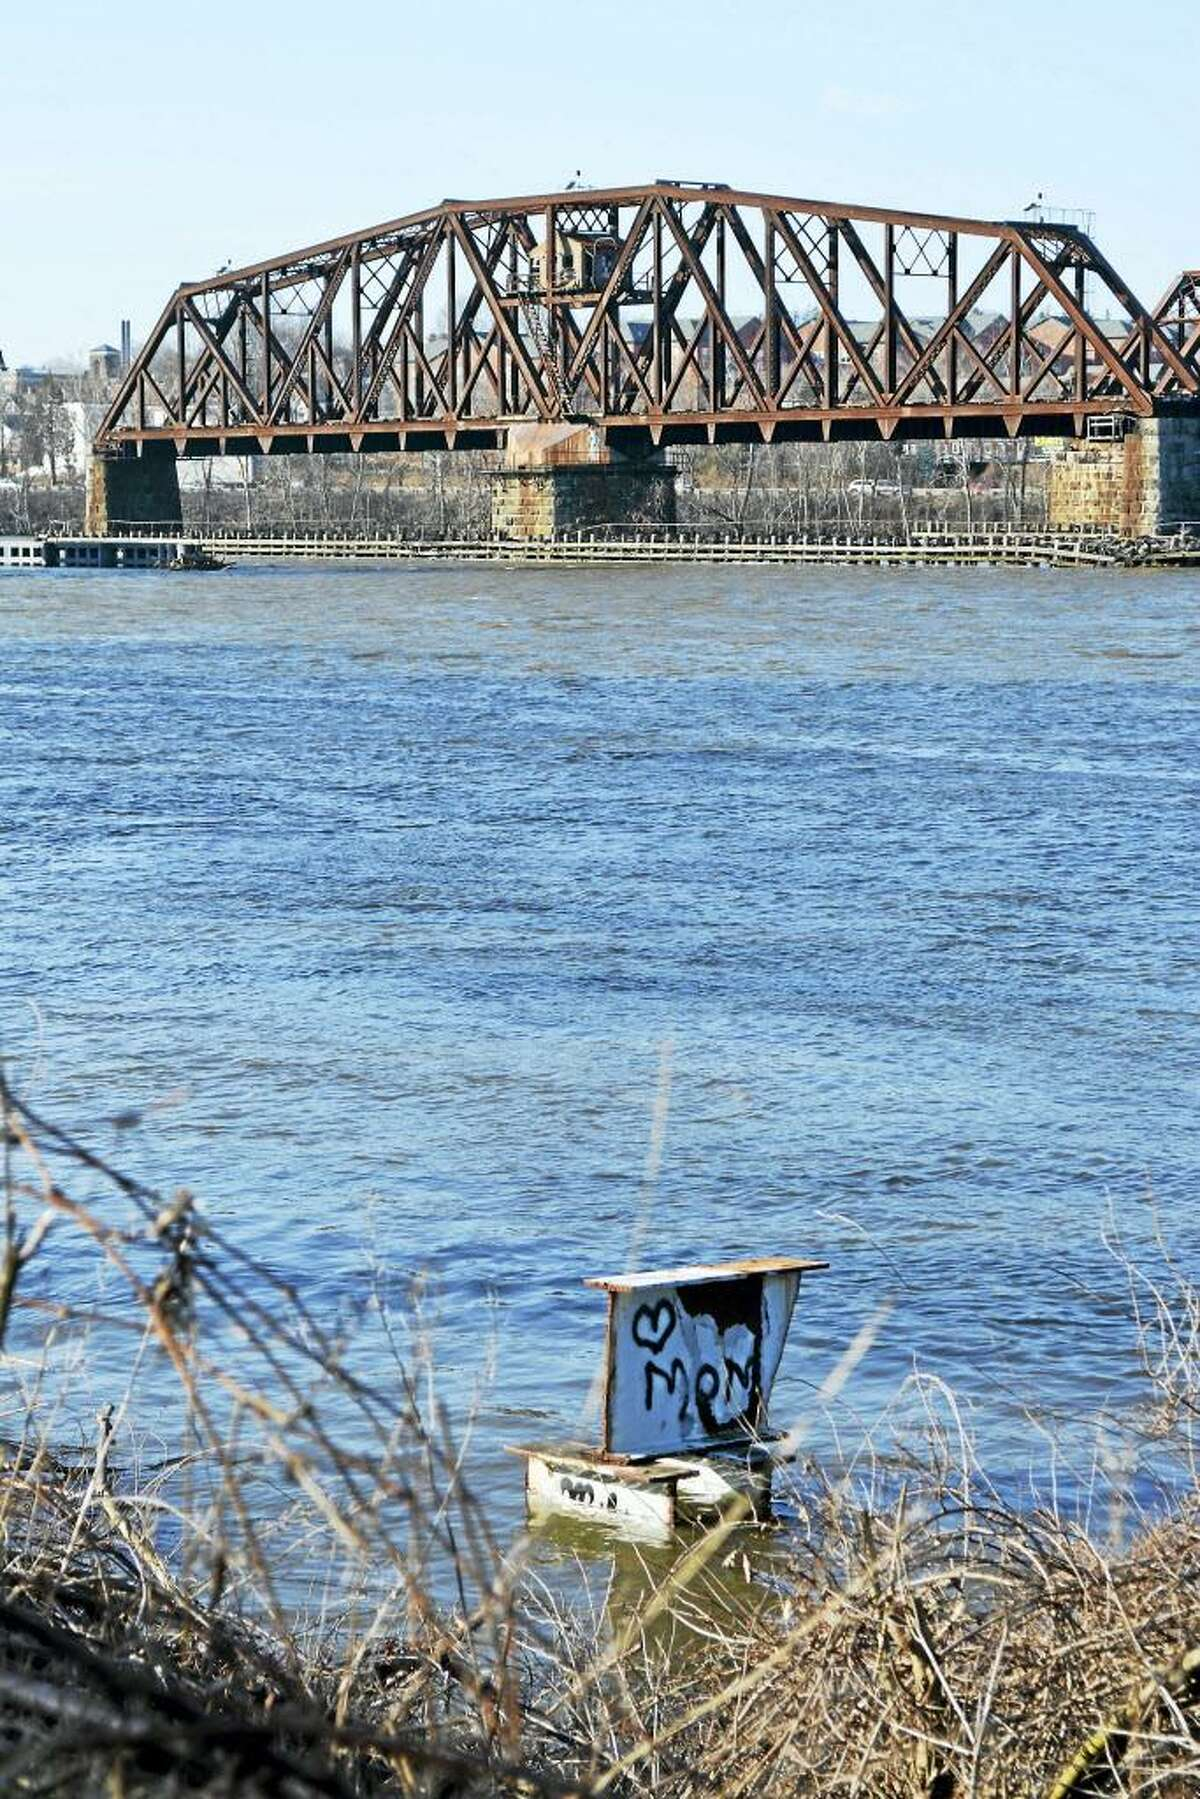 A view of the Connecticut River from the Portland side